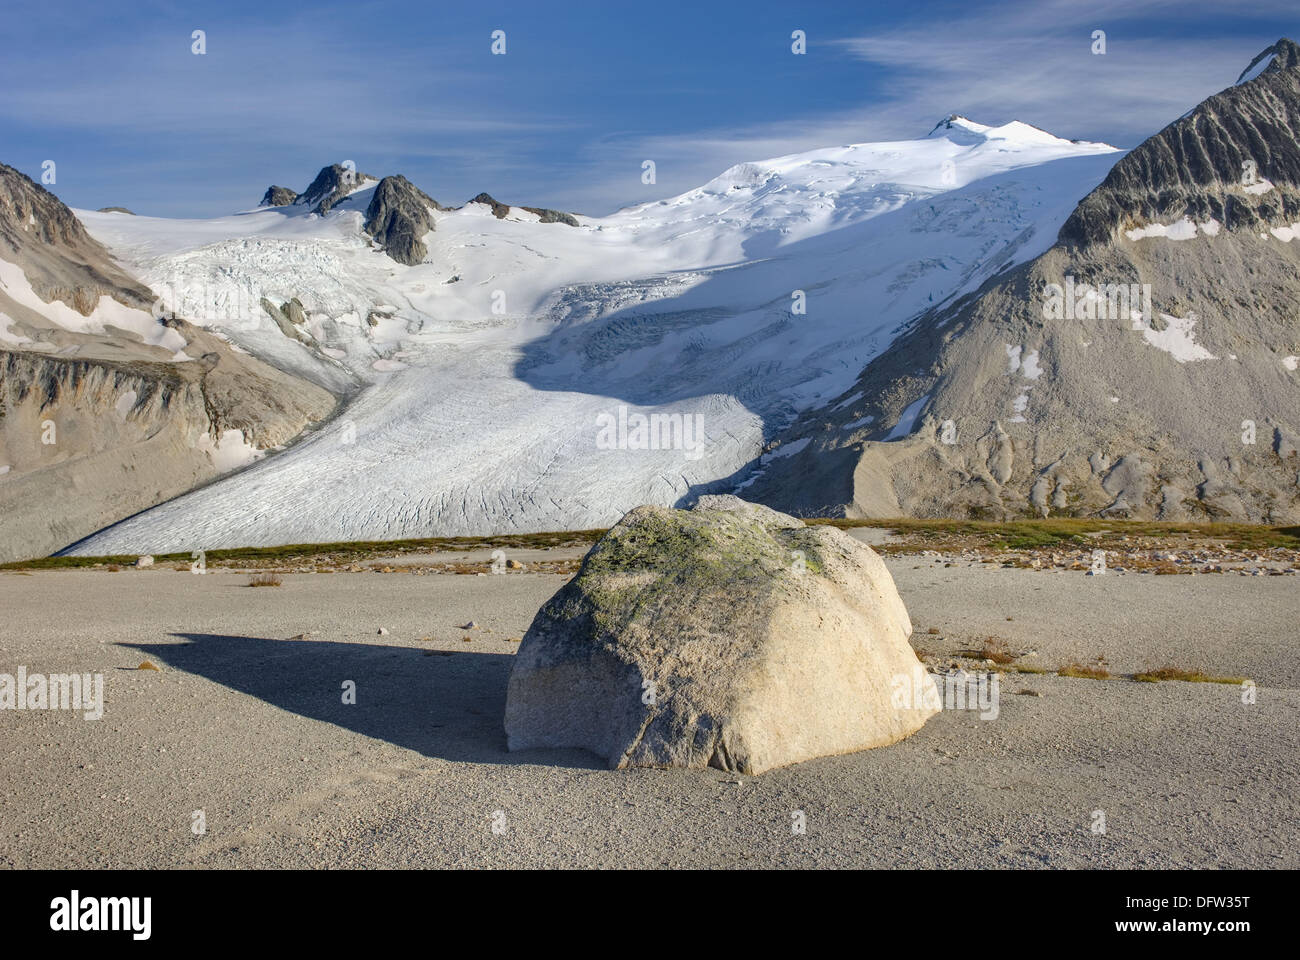 Icemaker Mountain center 2745 m 9006 ft and Mount Guthrum 2695 m 8842 ft seen from pumice covered slopes above Athelney Pass, - Stock Image